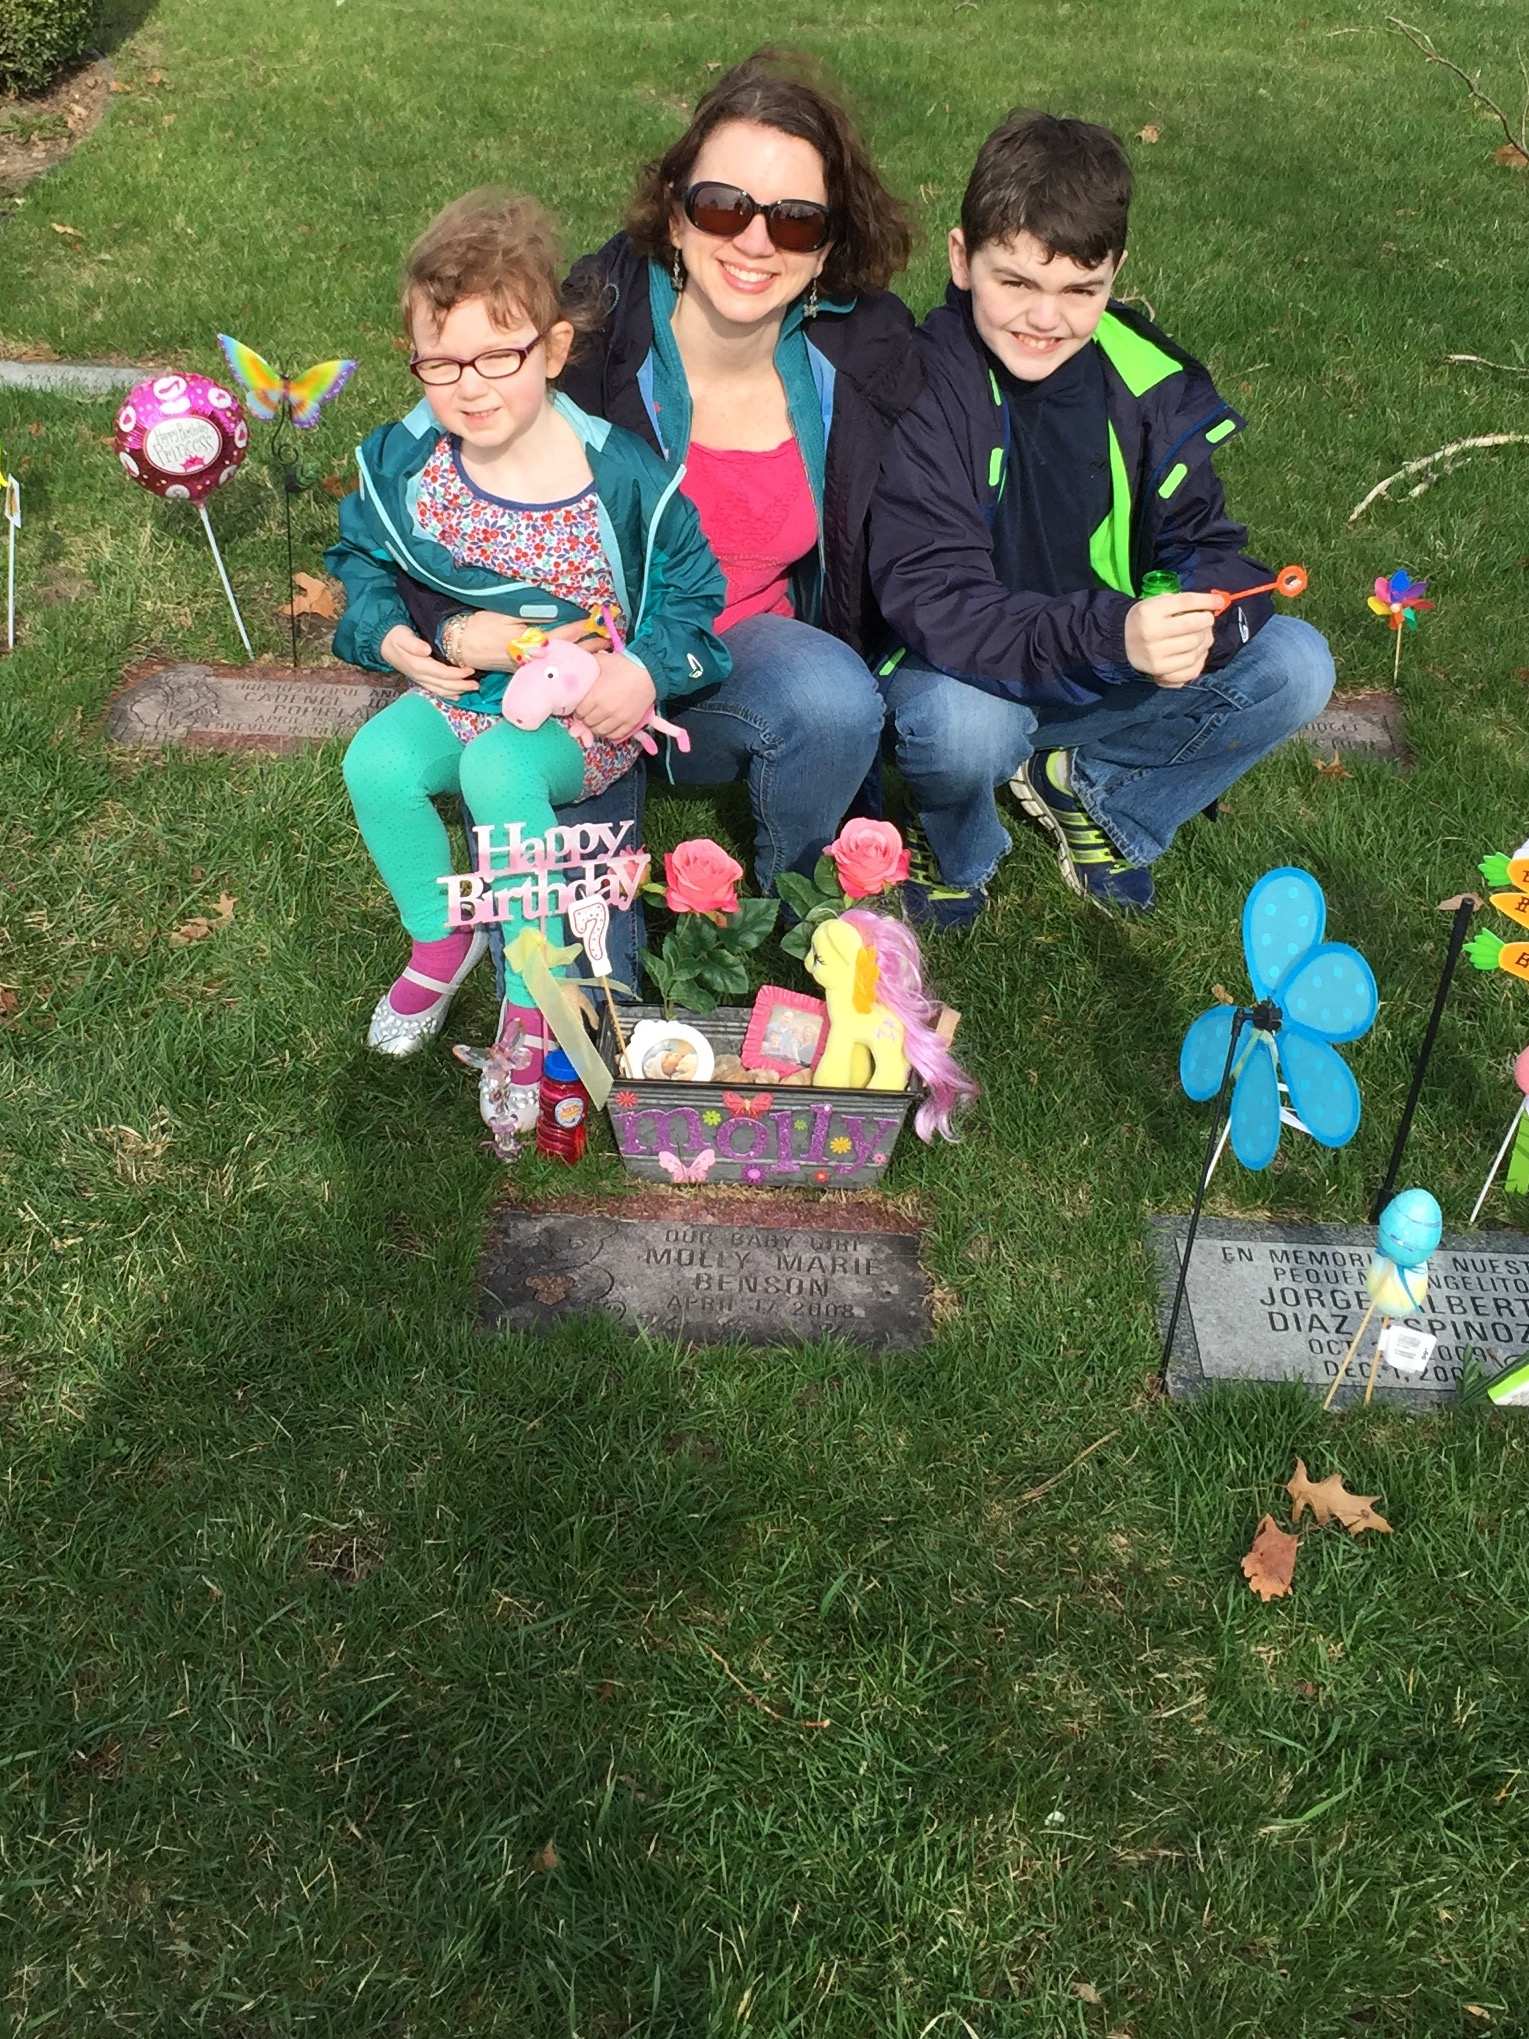 We Started The Day Visiting Your Grave At Cemetery Placed Decorations Sang Happy Birthday To You Blew Bubbles Again In Lieu Of Releasing